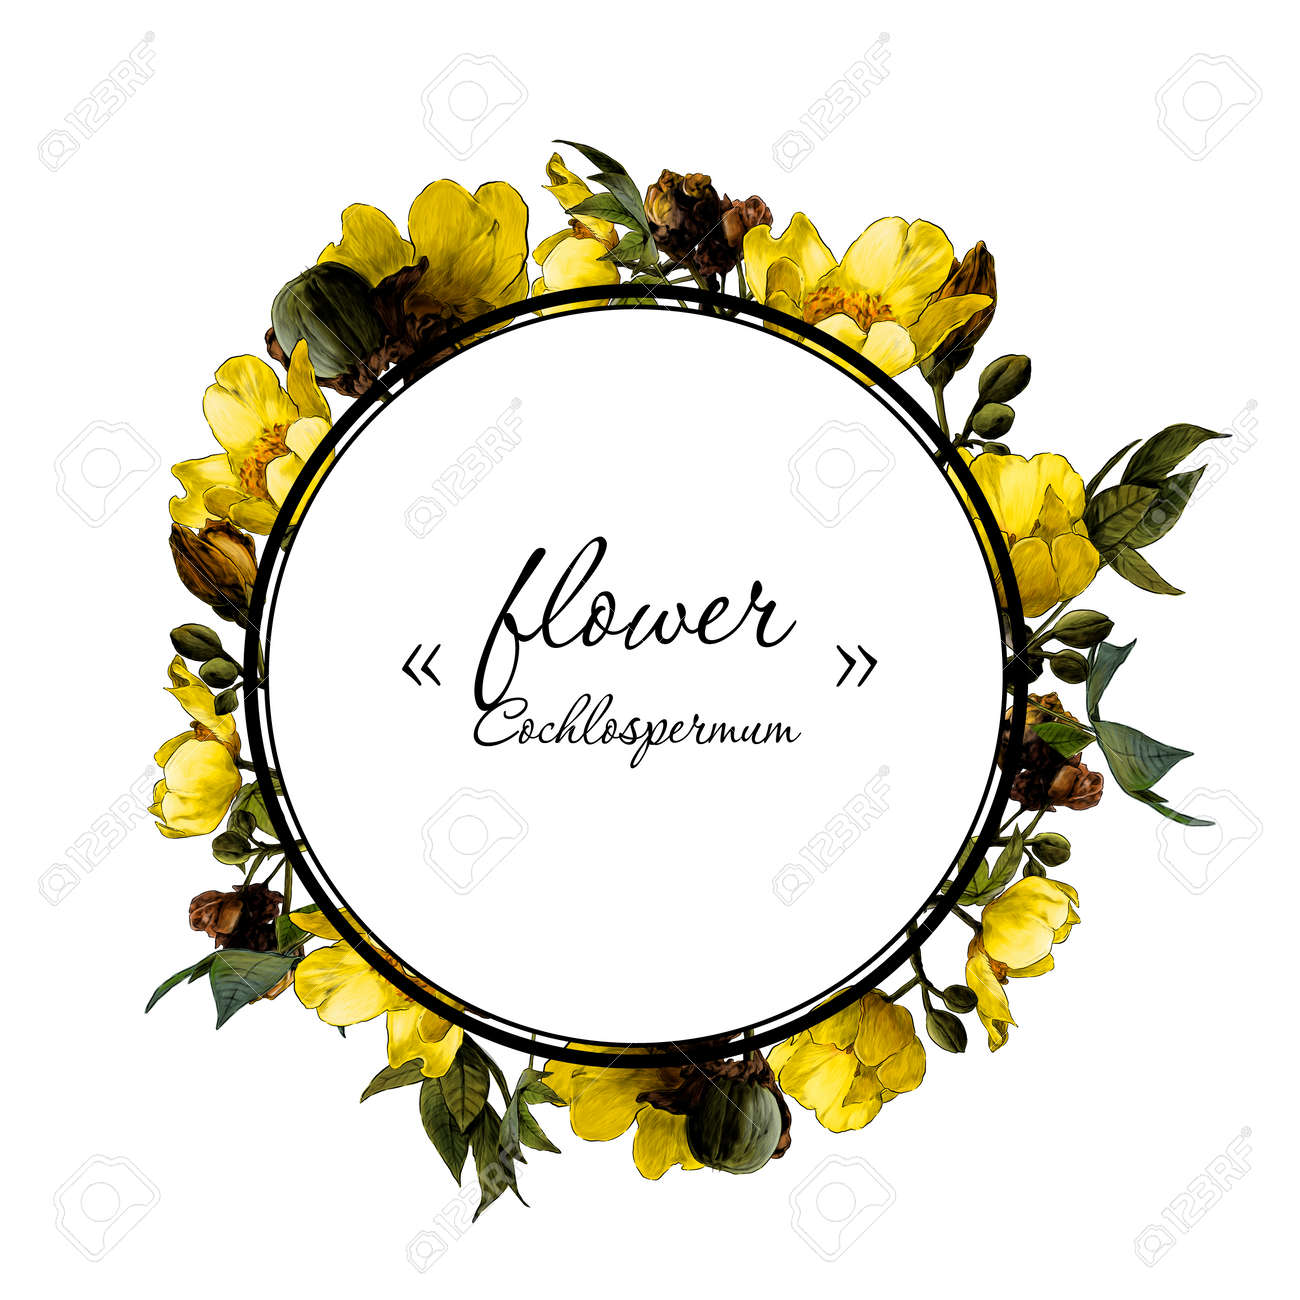 round frame decorated with branches of a flowering cochlospermum tree with yellow flower buds and leaves, sketch vector graphics color drawing in lines on a white background - 162318524